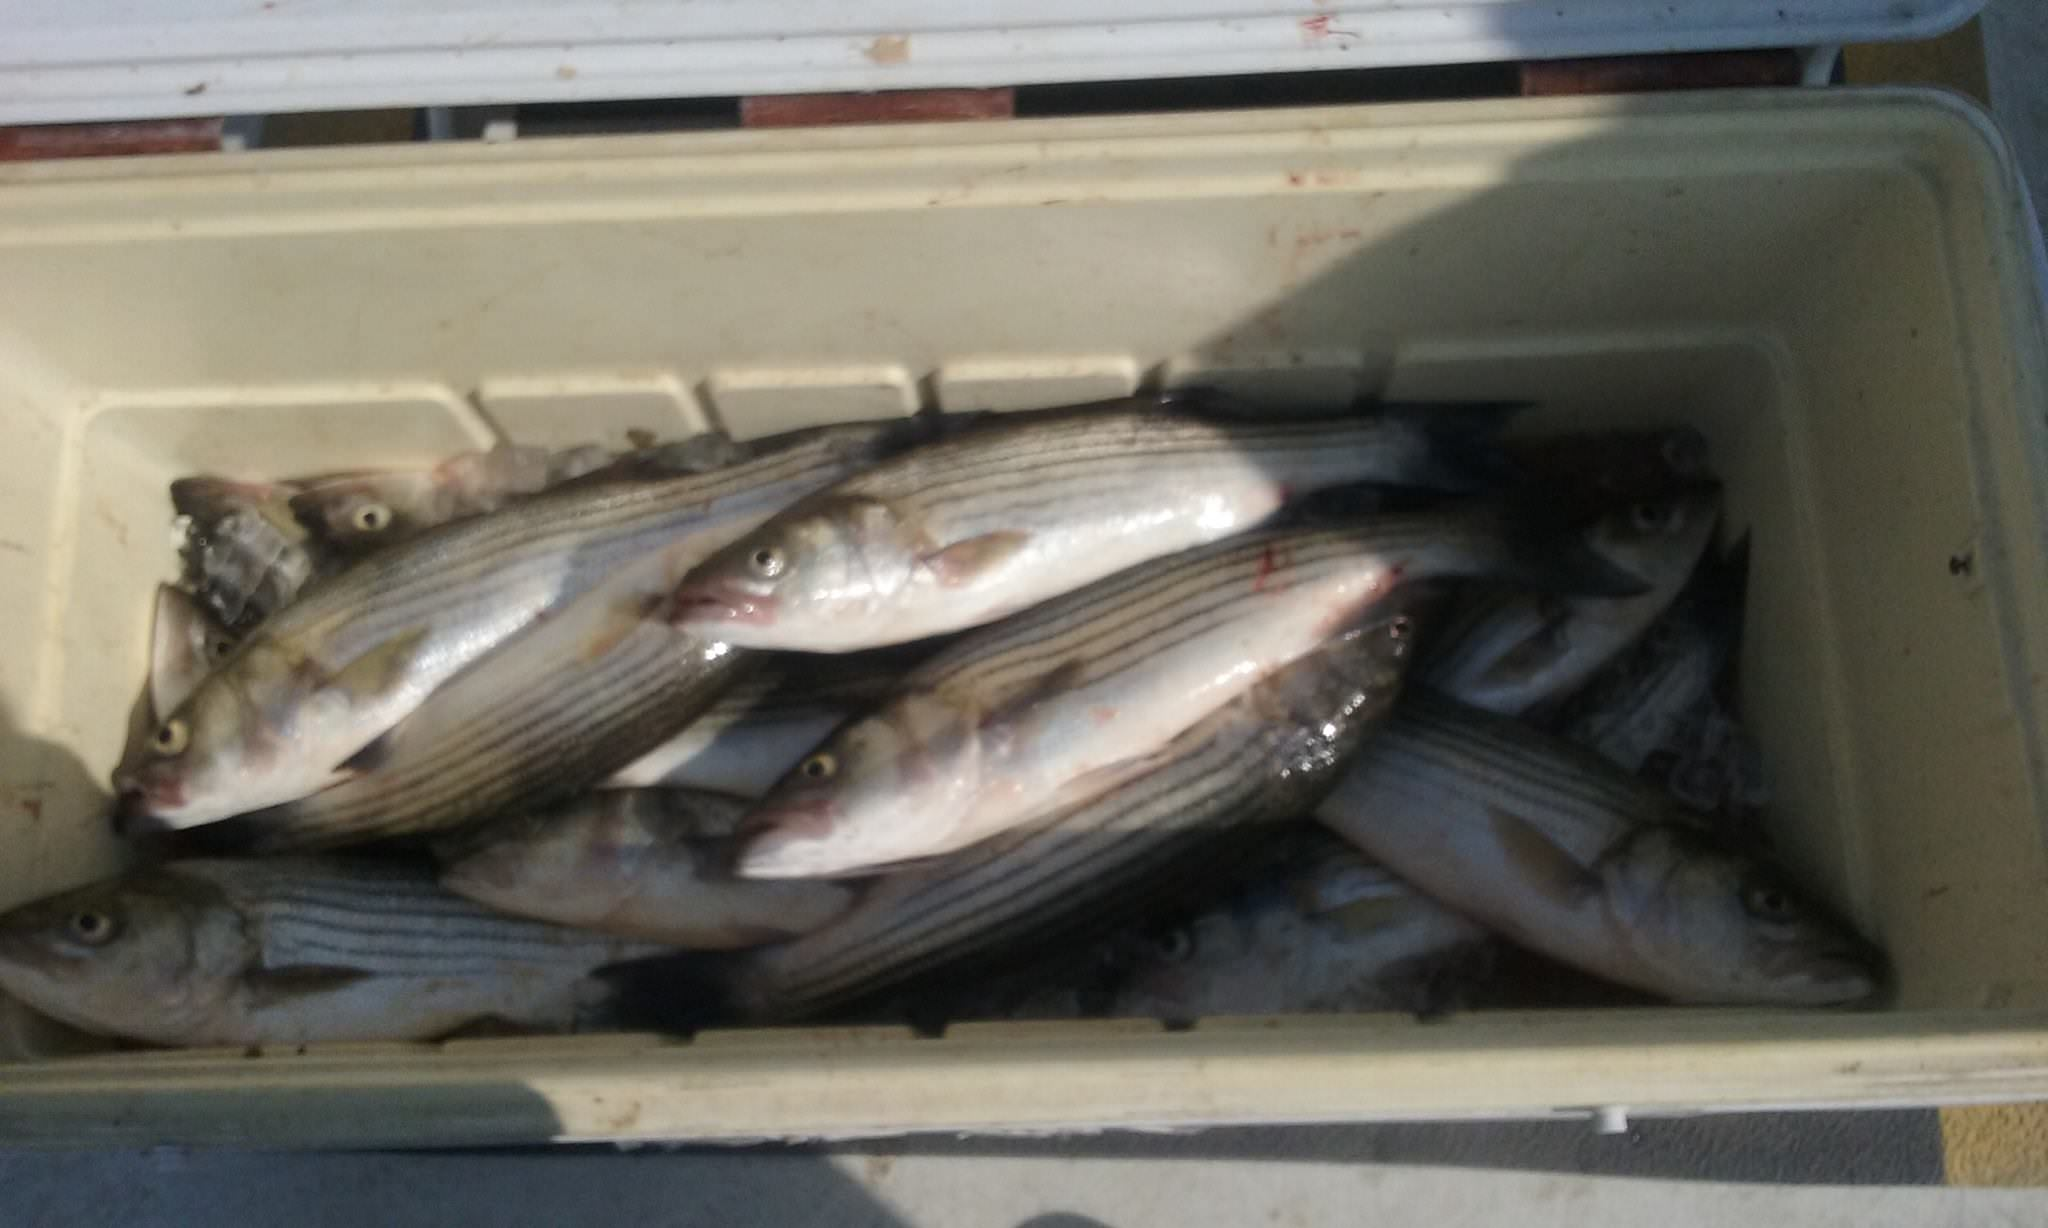 A Cooler Full of Chesapeake Bay Striped Bass!